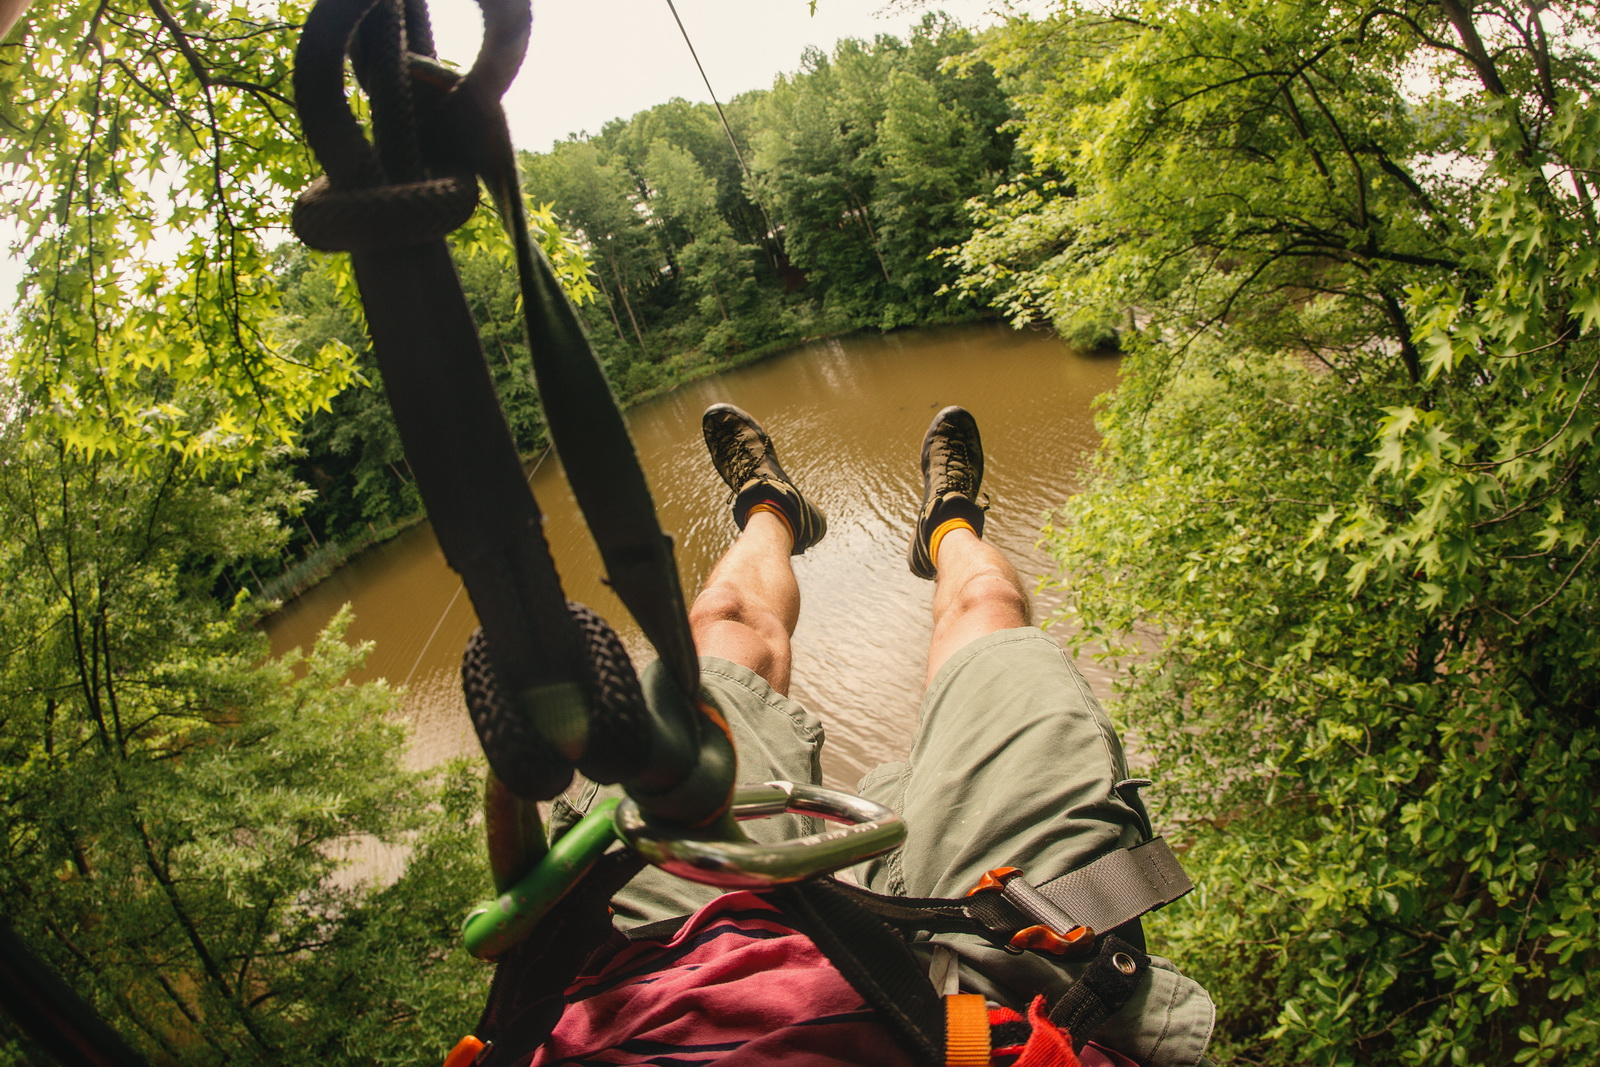 Ziplining at Go Ape Treetop Adventure Course at Lums Pond State Park